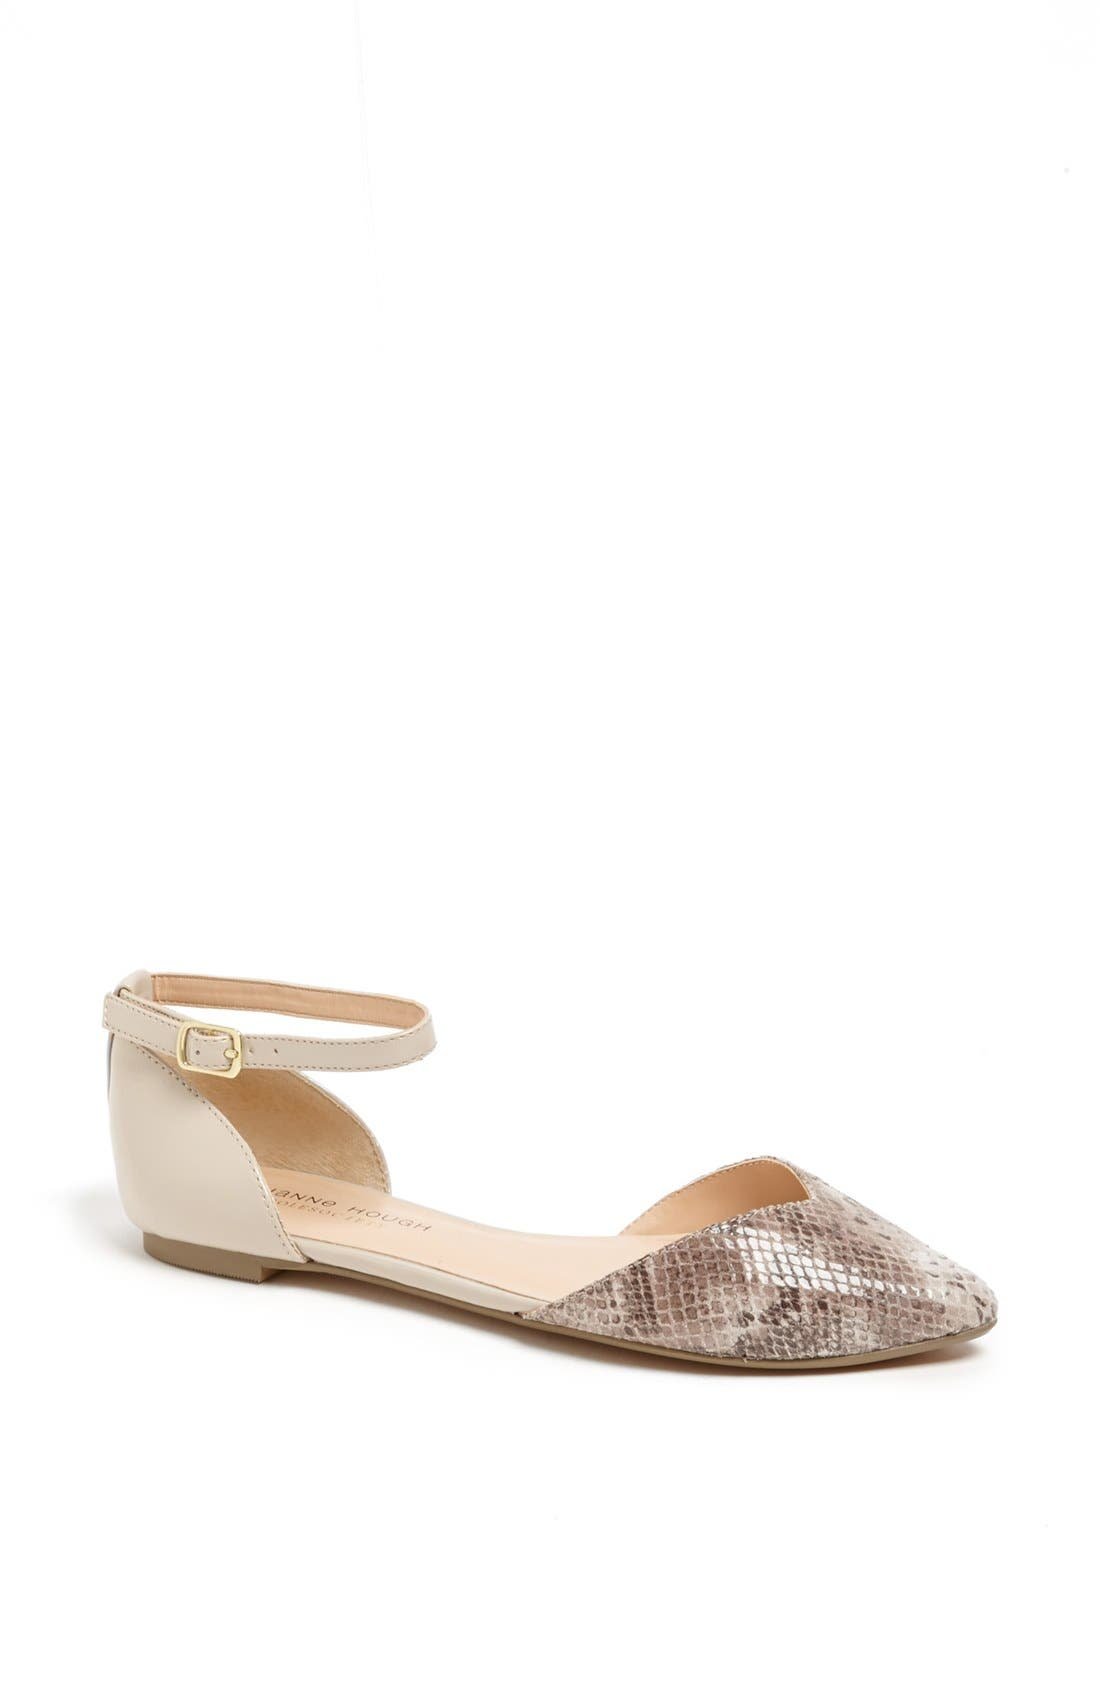 Main Image - Sole Society 'Hadley' Ankle Strap Pointy Toe Flat